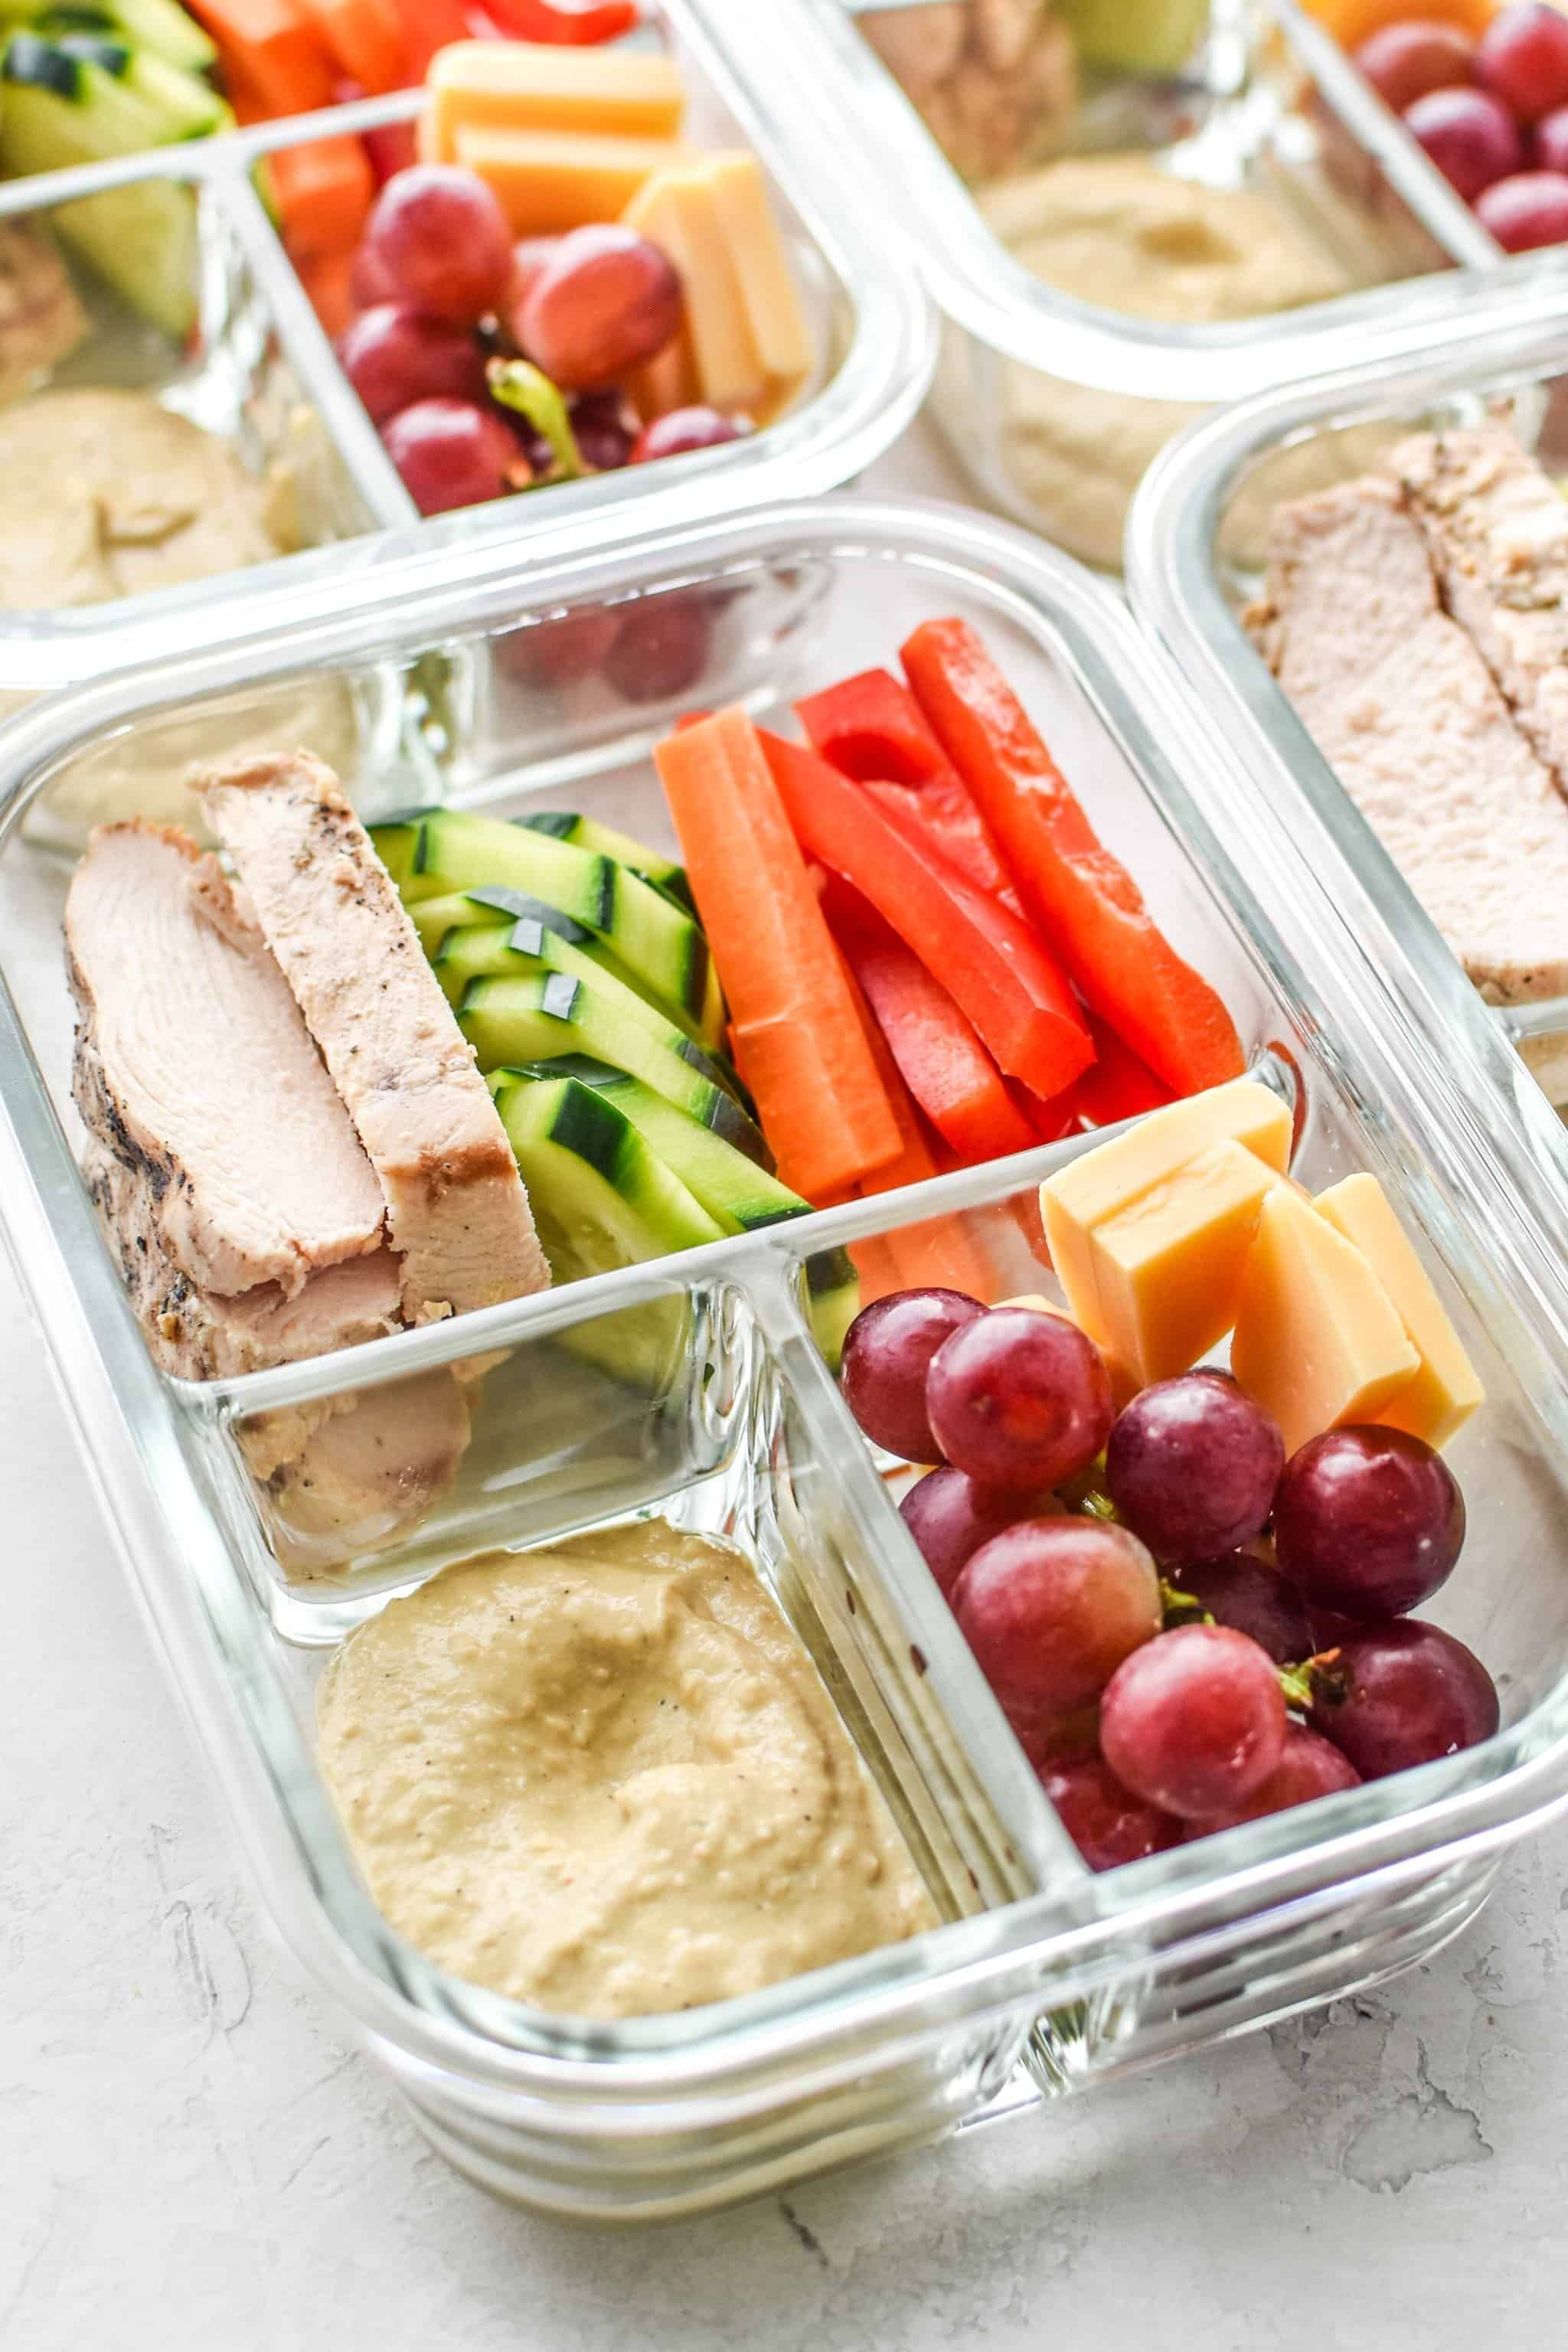 Healthy Make Ahead Work Lunch Ideas Lunch meal prep